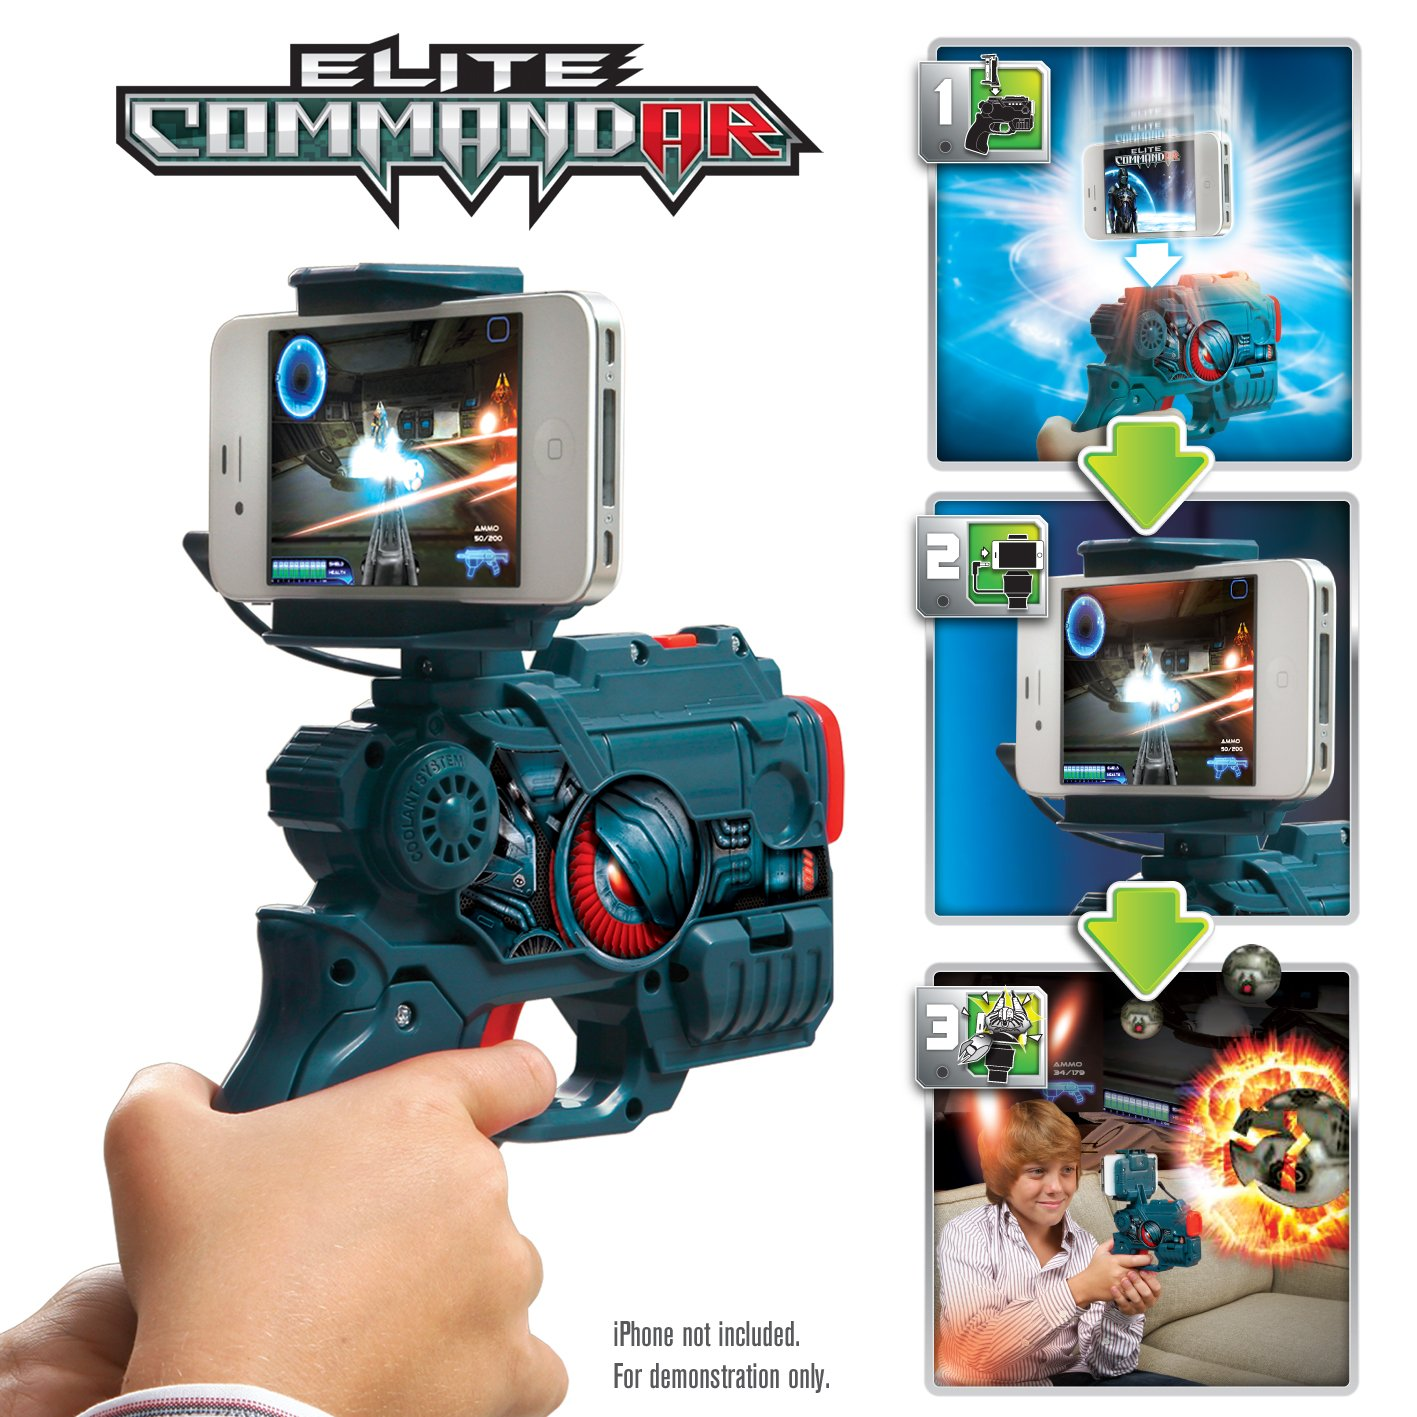 WowWee W0140 AppGear Elite Commandar Edition Mobile Application Game for Apple or Android Devices - Retail Packaging - Grey